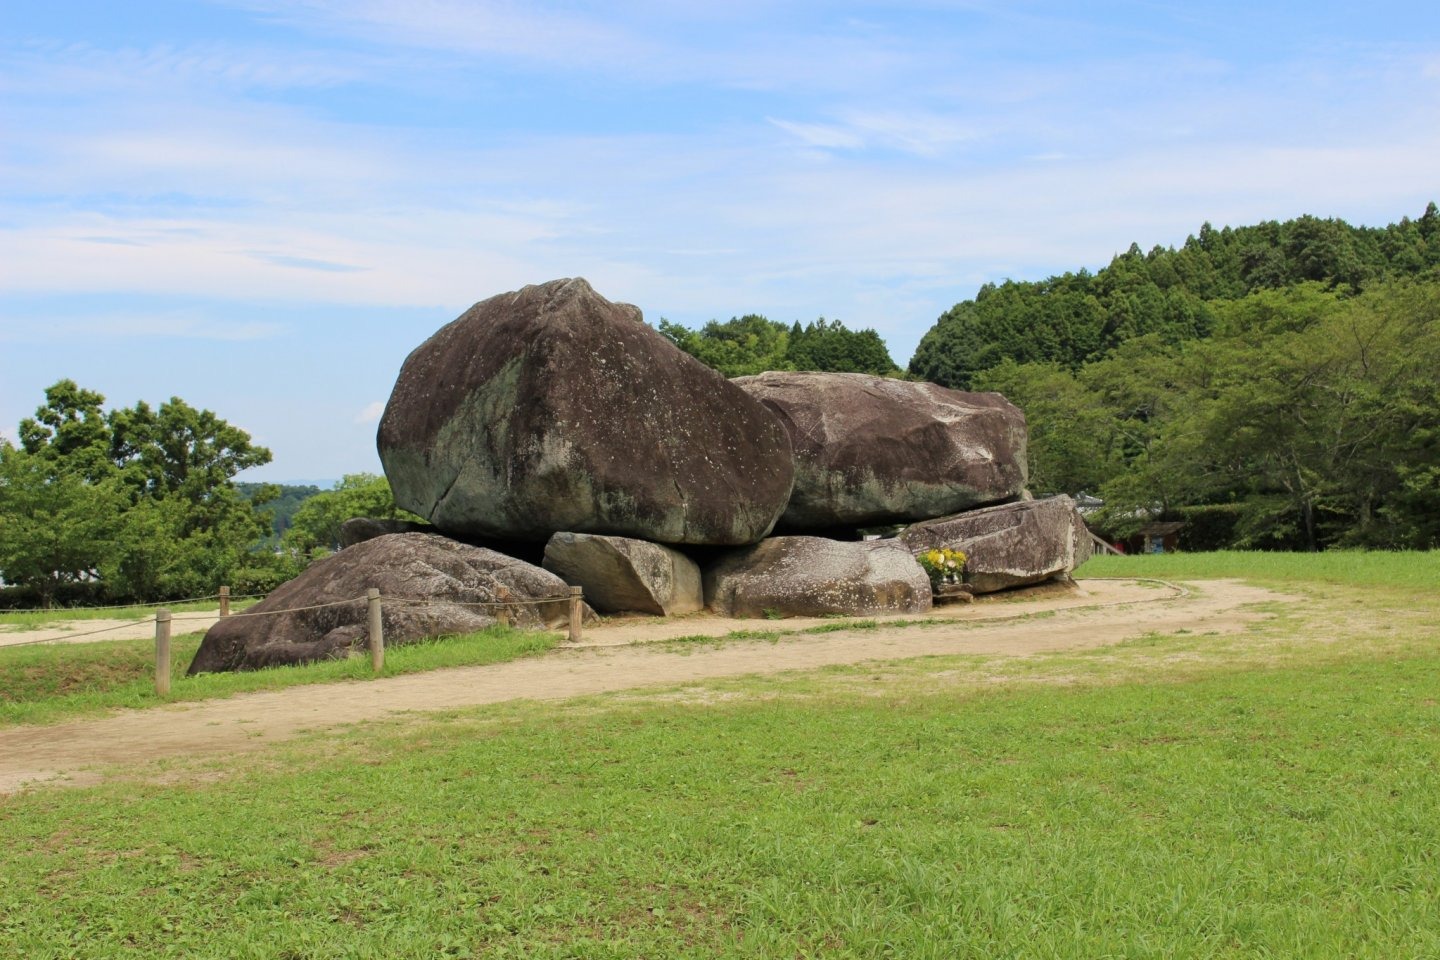 Egypt isn't the only country with the tombs of Kings, Japan has them too! This is the Ishibutai in Asuka